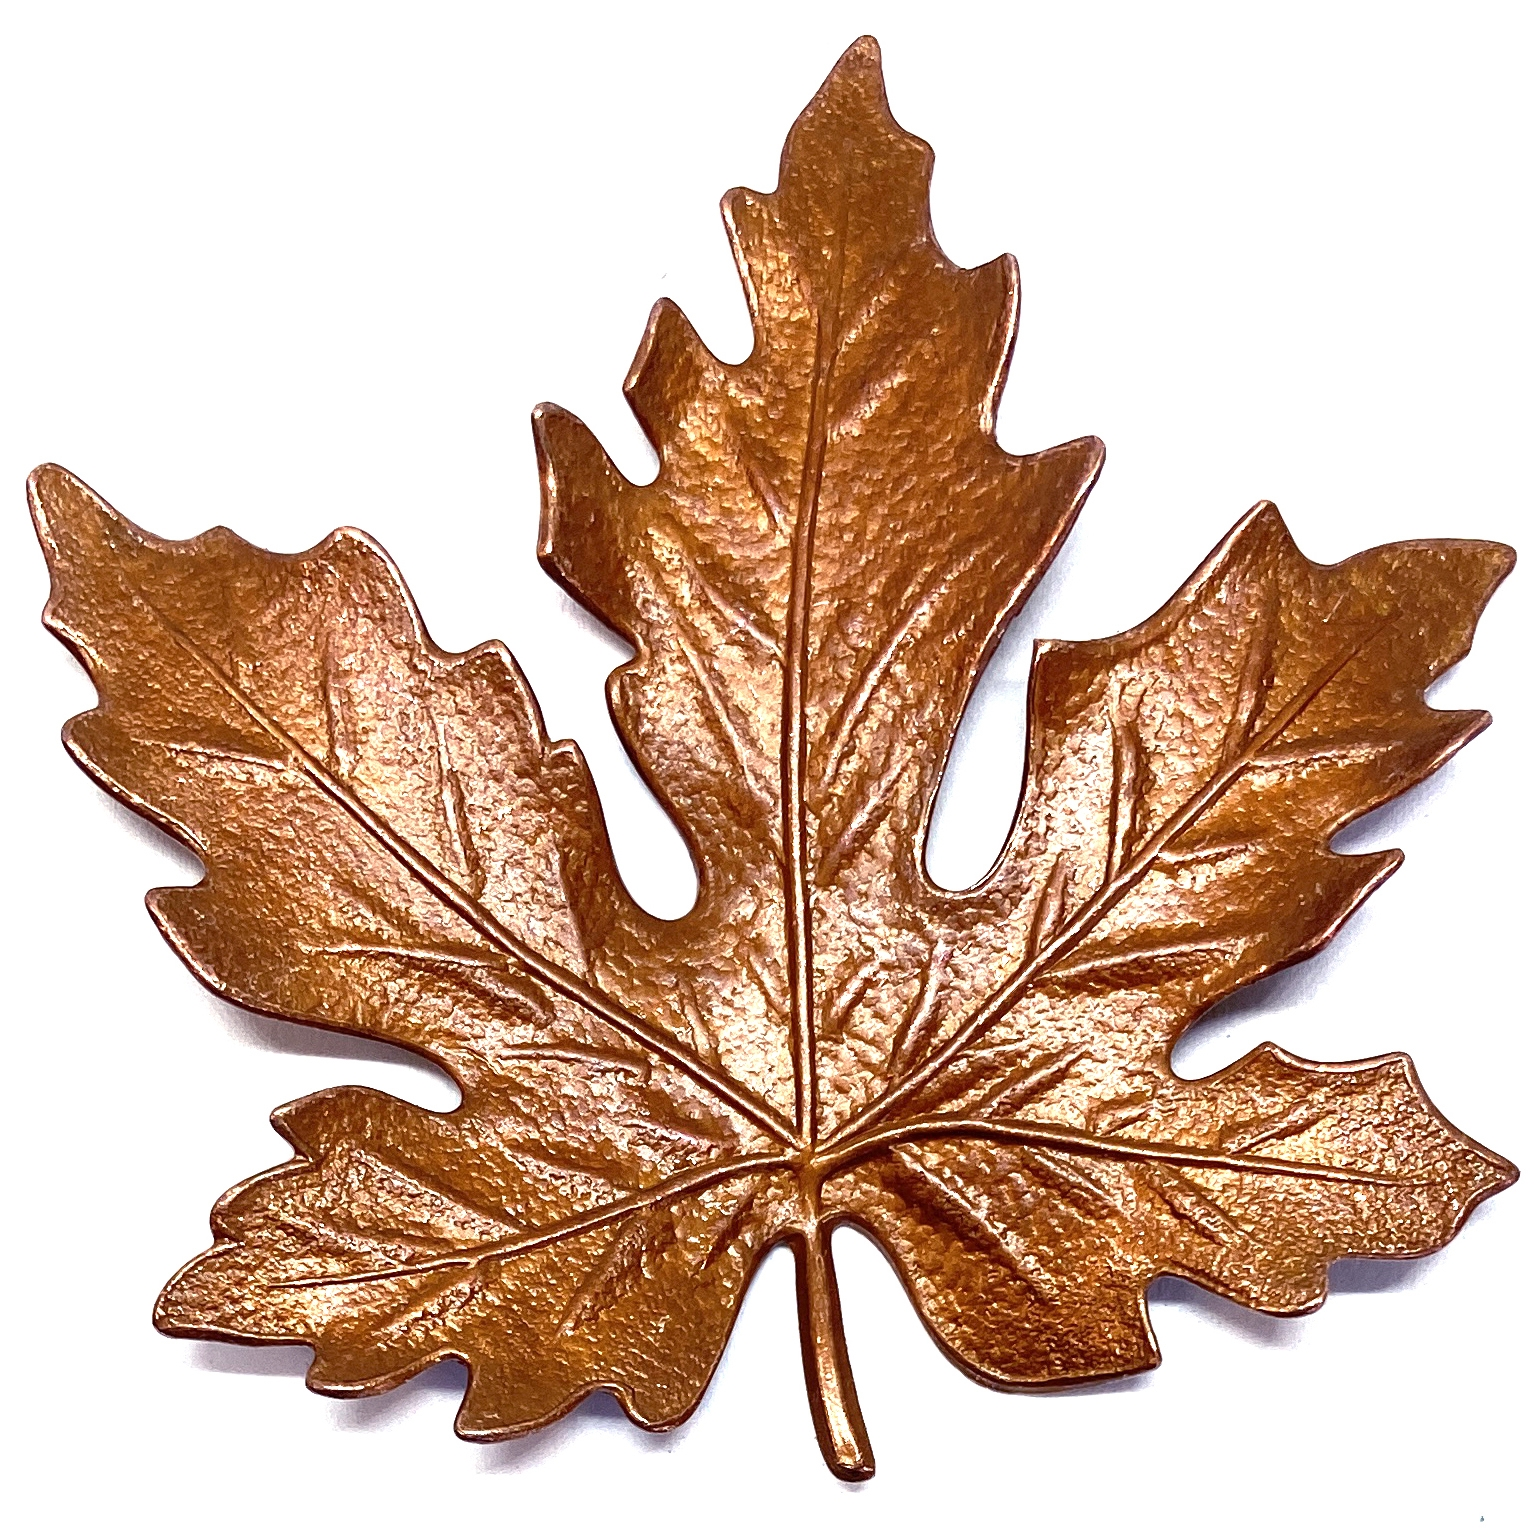 brass leaves, maple leaves, 55mm, 03947, brass ox, black antiquing, antique brass, leaf stampings, jewelry supplies, jewelry making, brass jewelry parts, B'sue Boutiques, US Made, nickel free, vintage jewelry supplies,